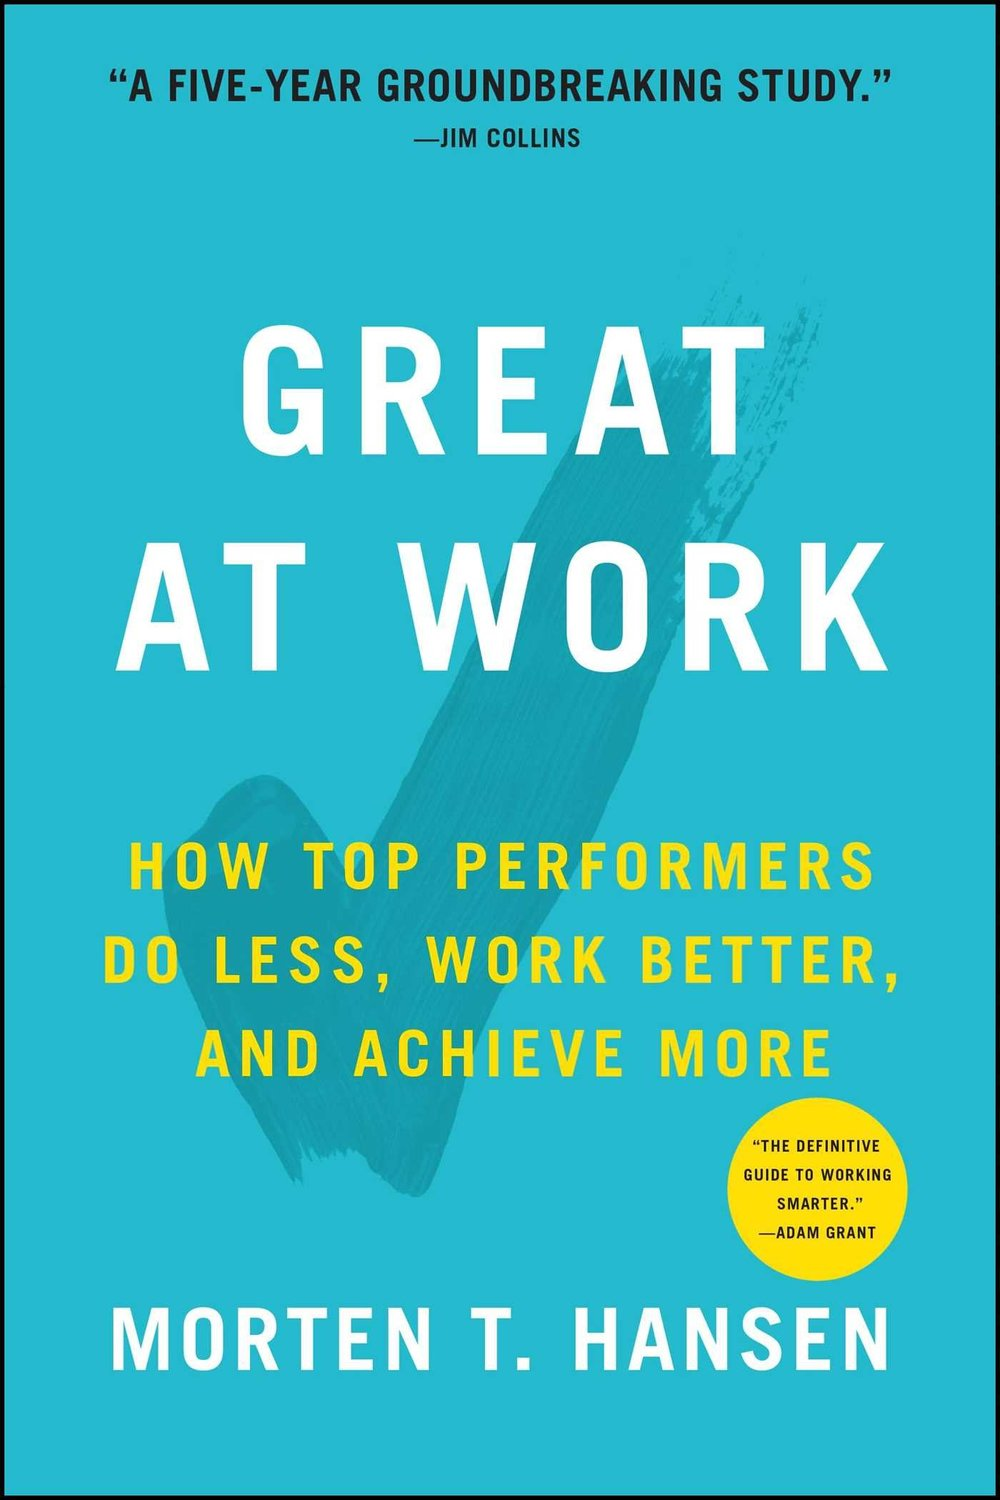 "From the  New York Times  bestselling coauthor of  Great by Choice  comes an authoritative, practical guide to individual performance—based on analysis from an exhaustive, groundbreaking study.  Why do some people perform better at work than others? This deceptively simple question continues to confound professionals in all sectors of the workforce. Now, after a unique, five-year study of more than 5,000 managers and employees, Morten Hansen reveals the answers in his ""Seven Work Smarter Practices"" that can be applied by anyone looking to maximize their time and performance.  Each of Hansen's seven practices is highlighted by inspiring stories from individuals in his comprehensive study. You'll meet a high school principal who engineered a dramatic turnaround of his failing high school; a rural Indian farmer determined to establish a better way of life for women in his village; and a sushi chef, whose simple preparation has led to his restaurant (tucked away under a Tokyo subway station underpass) being awarded the maximum of three Michelin stars. Hansen also explains how the way Alfred Hitchcock filmed  Psycho  and the 1911 race to become the first explorer to reach the South Pole both illustrate the use of his seven practices (even before they were identified).  Each chapter contains questions and key insights to allow you to assess your own performance and figure out your work strengths, as well as your weaknesses. Once you understand your individual style, there are mini-quizzes, questionnaires, and clear tips to assist you focus on a strategy to become a more productive worker. Extensive, accessible, and friendly,  Great at Work  will help you achieve more by working less, backed by unprecedented statistical analysis."